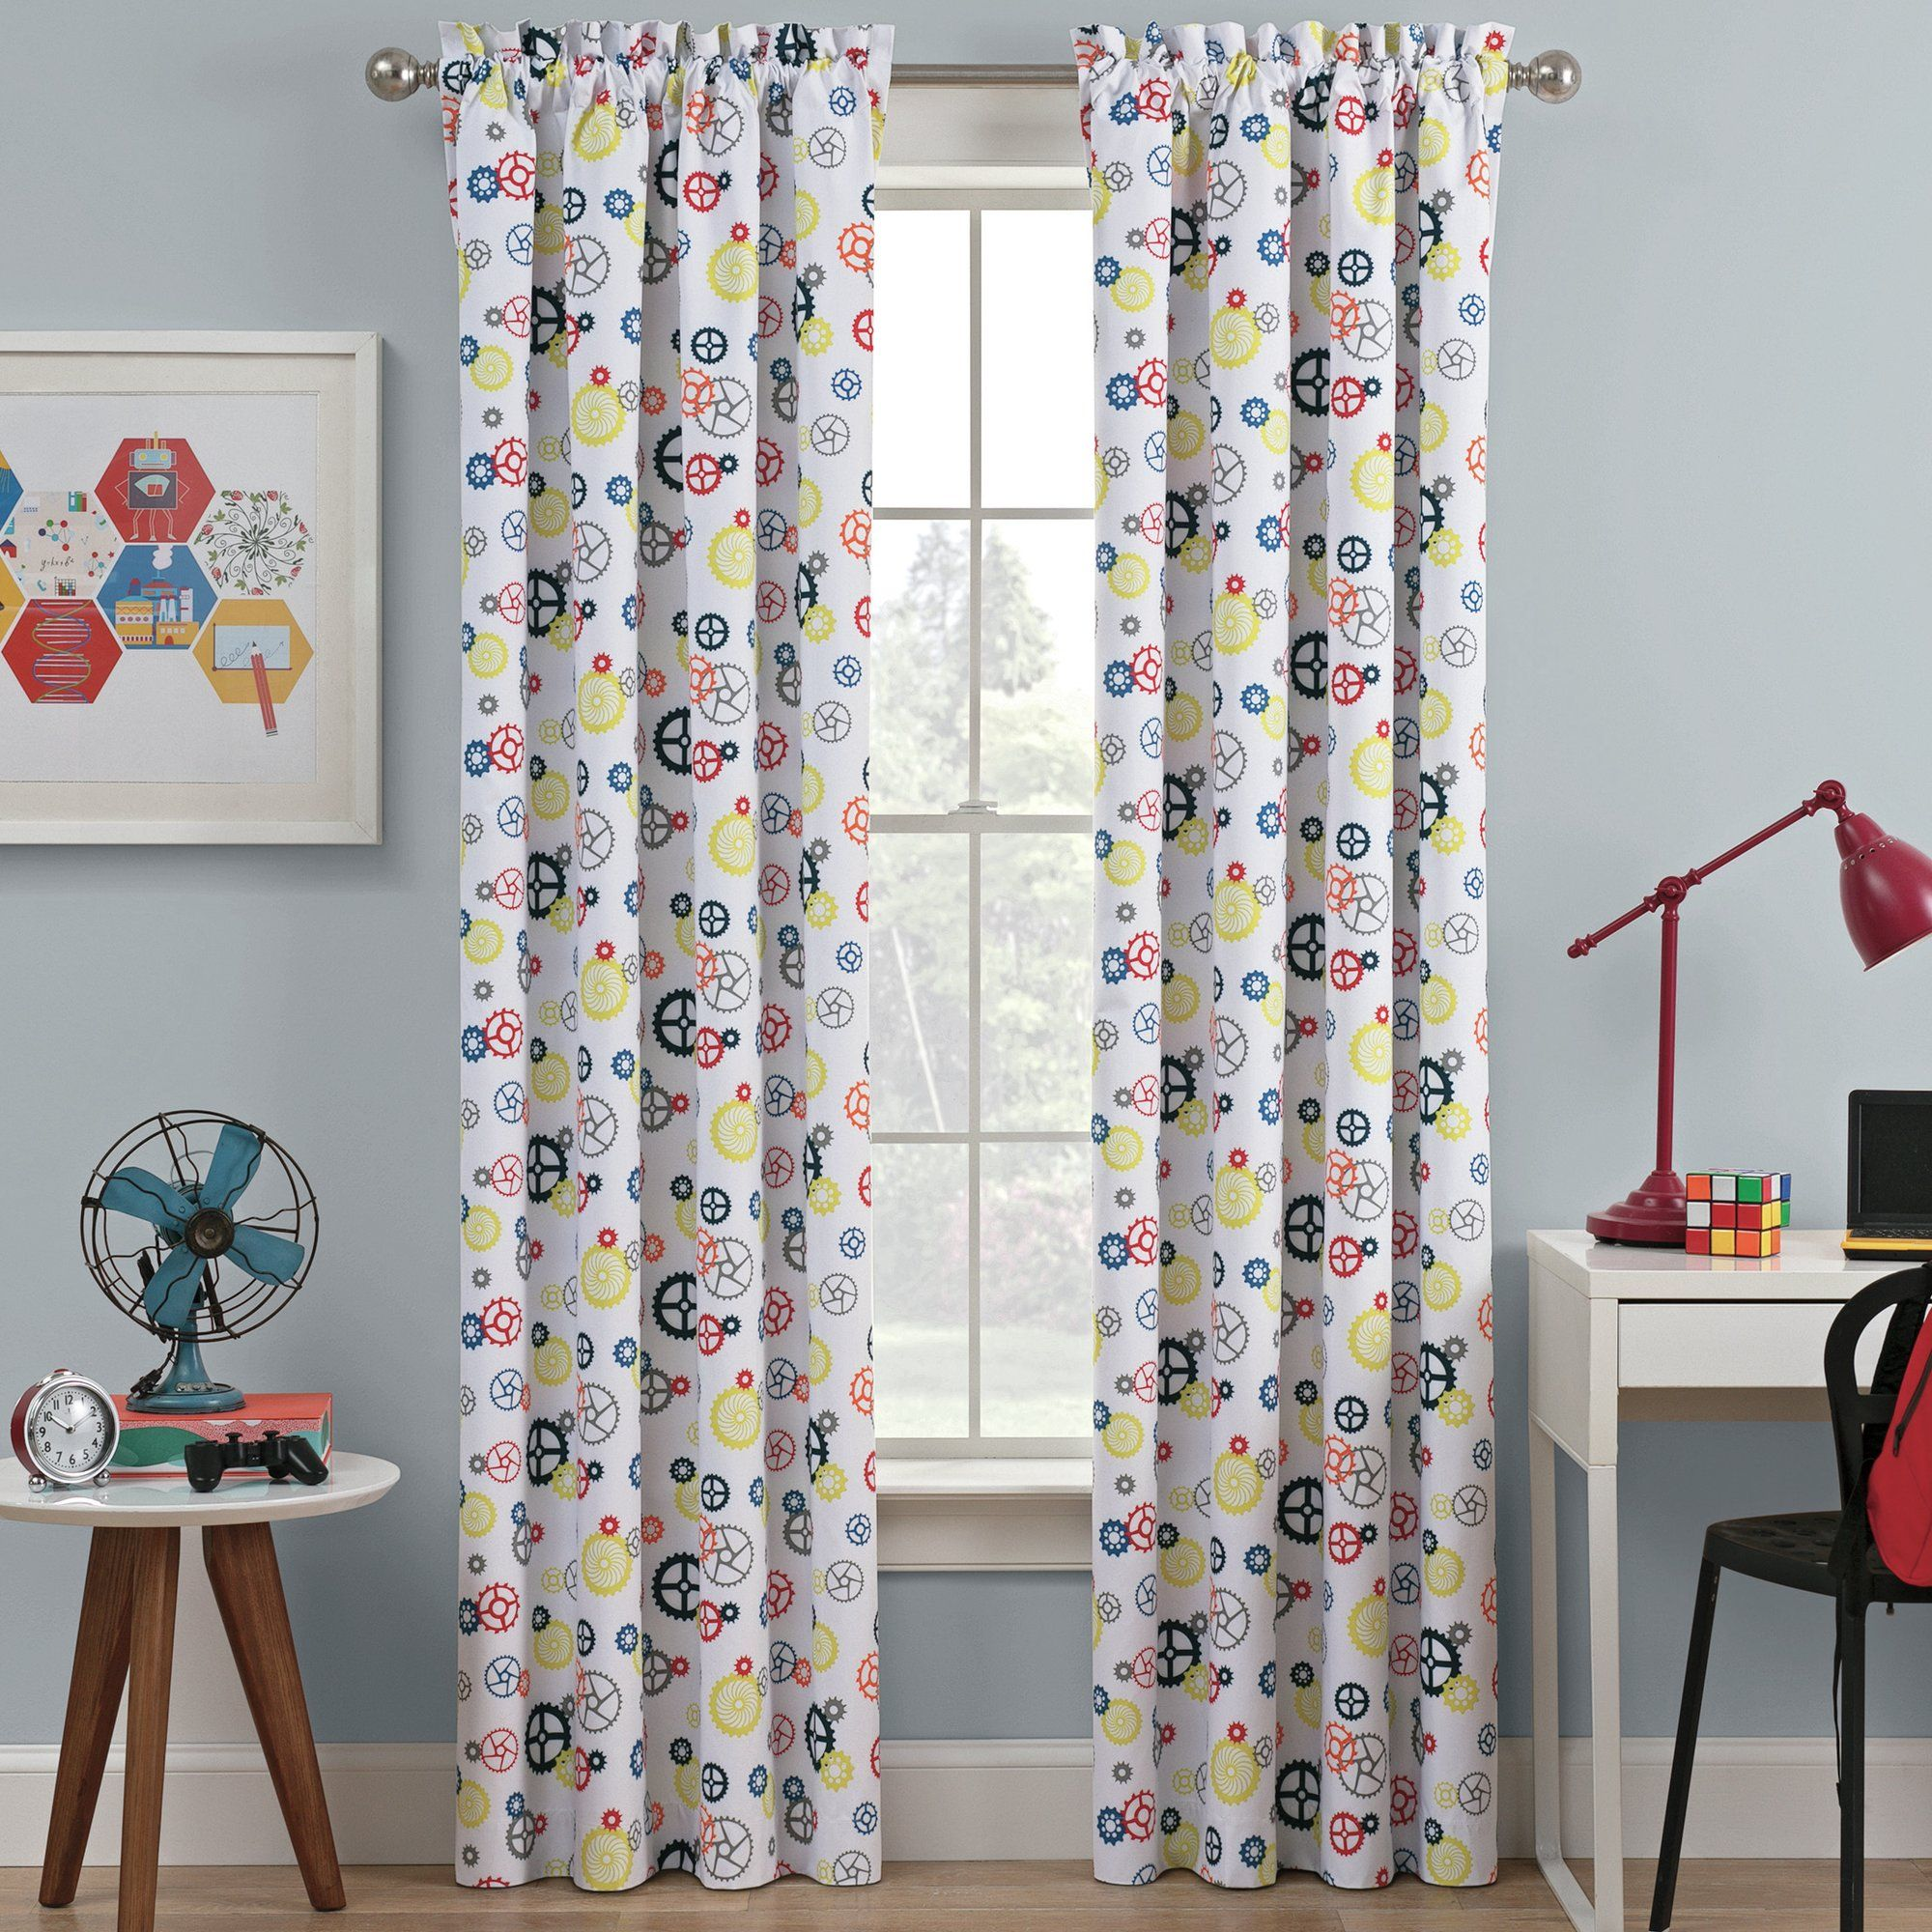 Window cover up ideas  waverly kids wind me up blackout window curtain  products